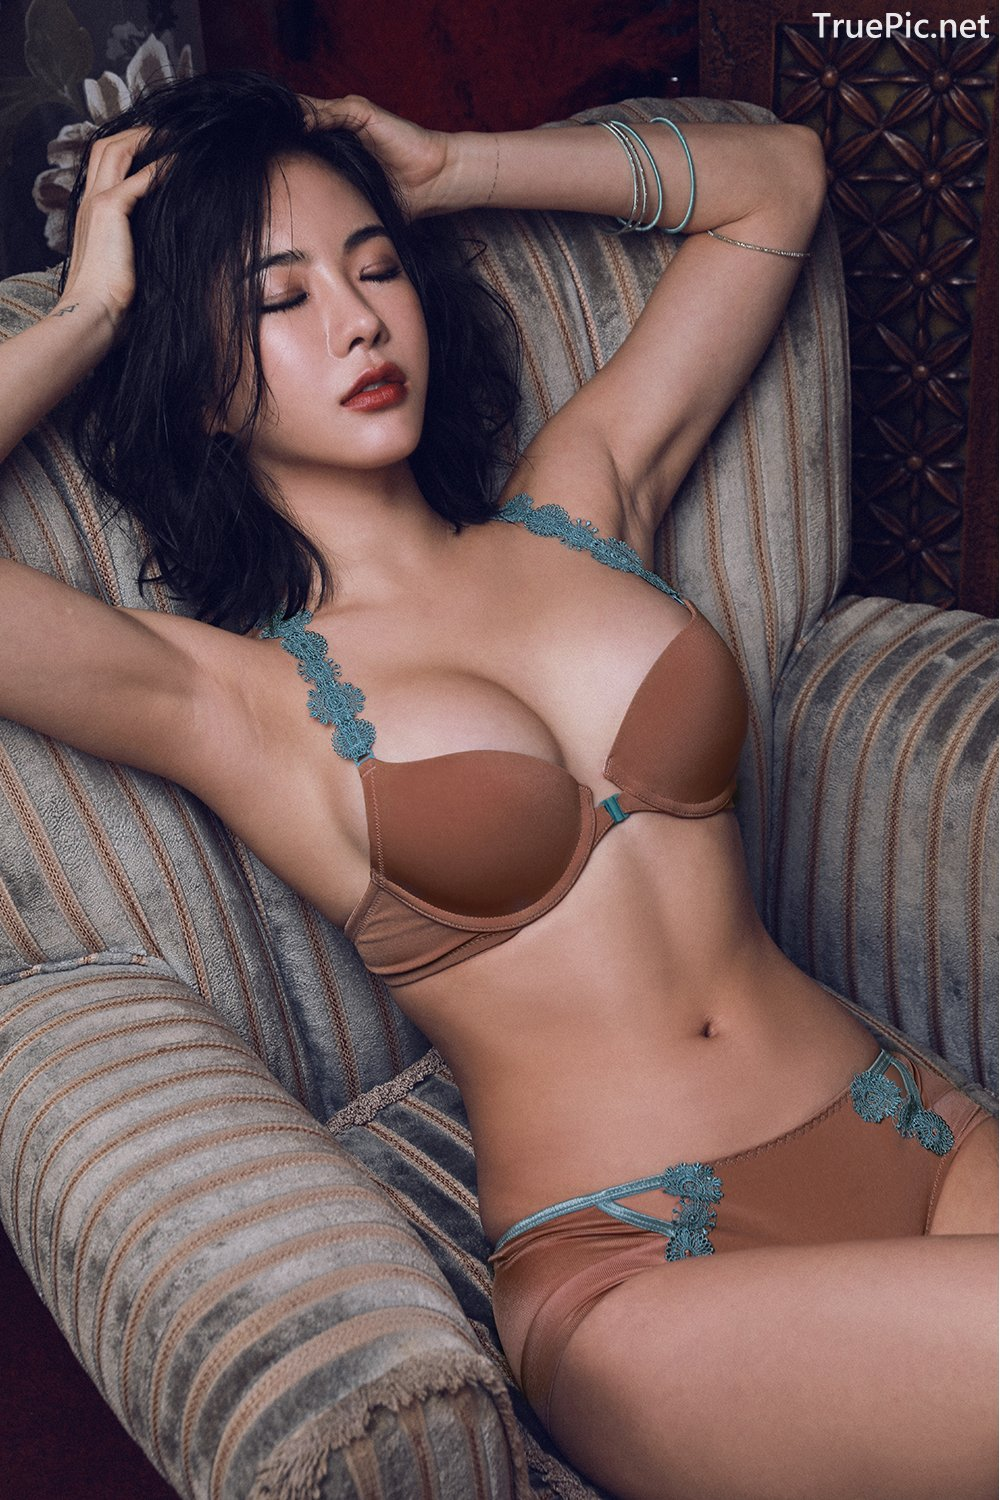 Image-An-Seo-Rin-Brown-and-Red-Lingerie-Korean-Model-Fashion-TruePic.net- Picture-6